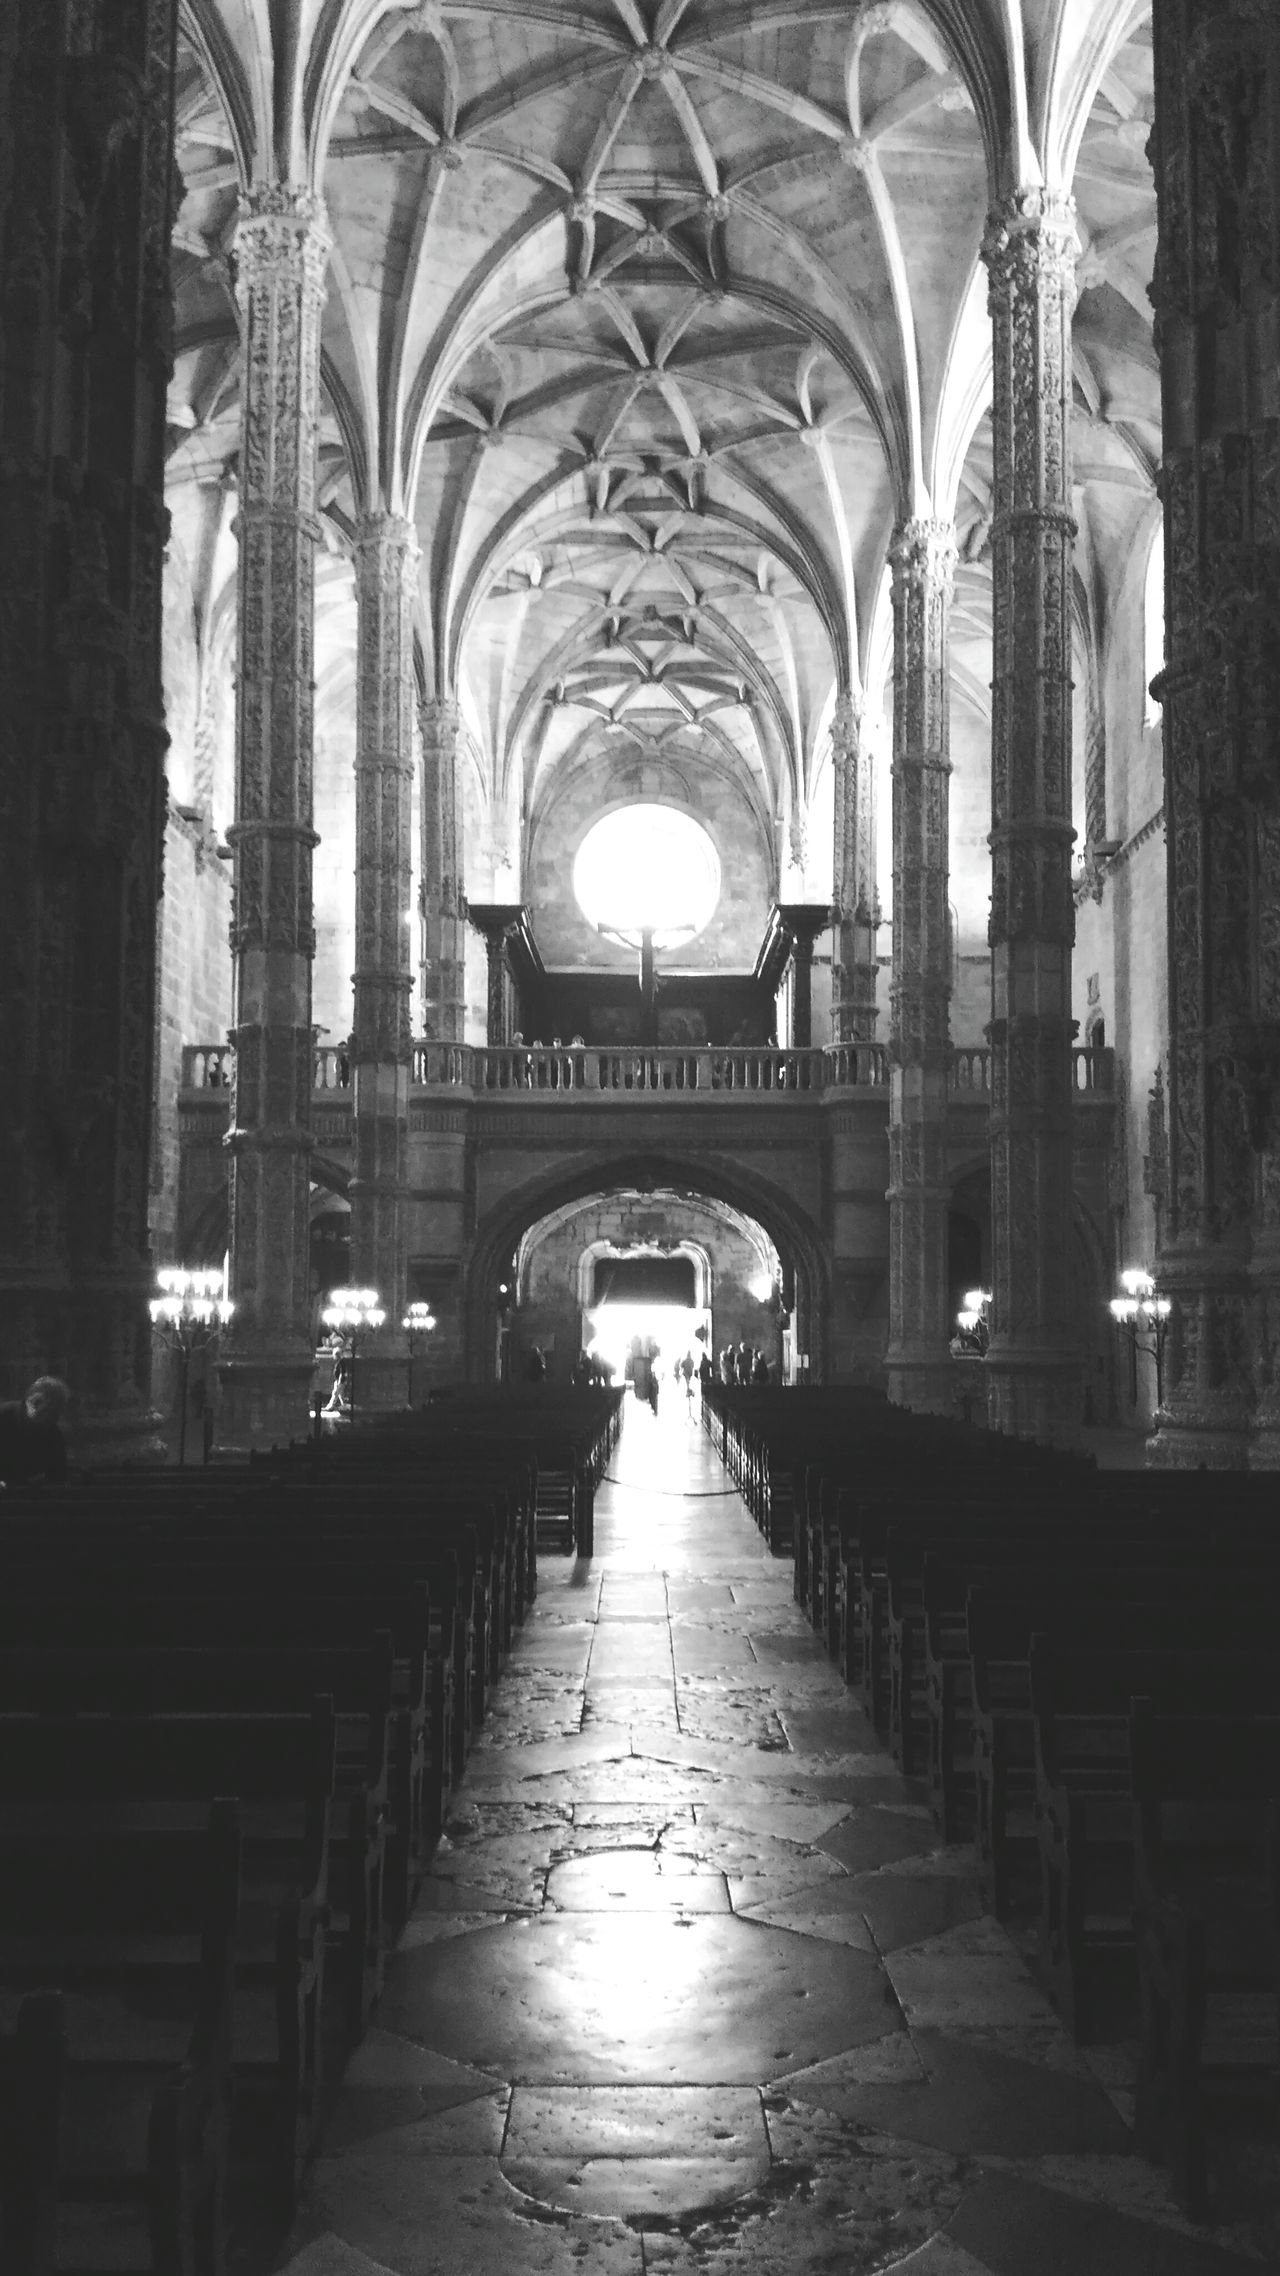 Arch Architecture Built Structure Indoors  Travel Destinations Architectural Column Place Of Worship History Religion The Way Forward Pew Day Mosteiro Dos Jerónimos Old Monastery Lisboa Portugal Place Of Worship Indoors  Black And White Photography Black And White